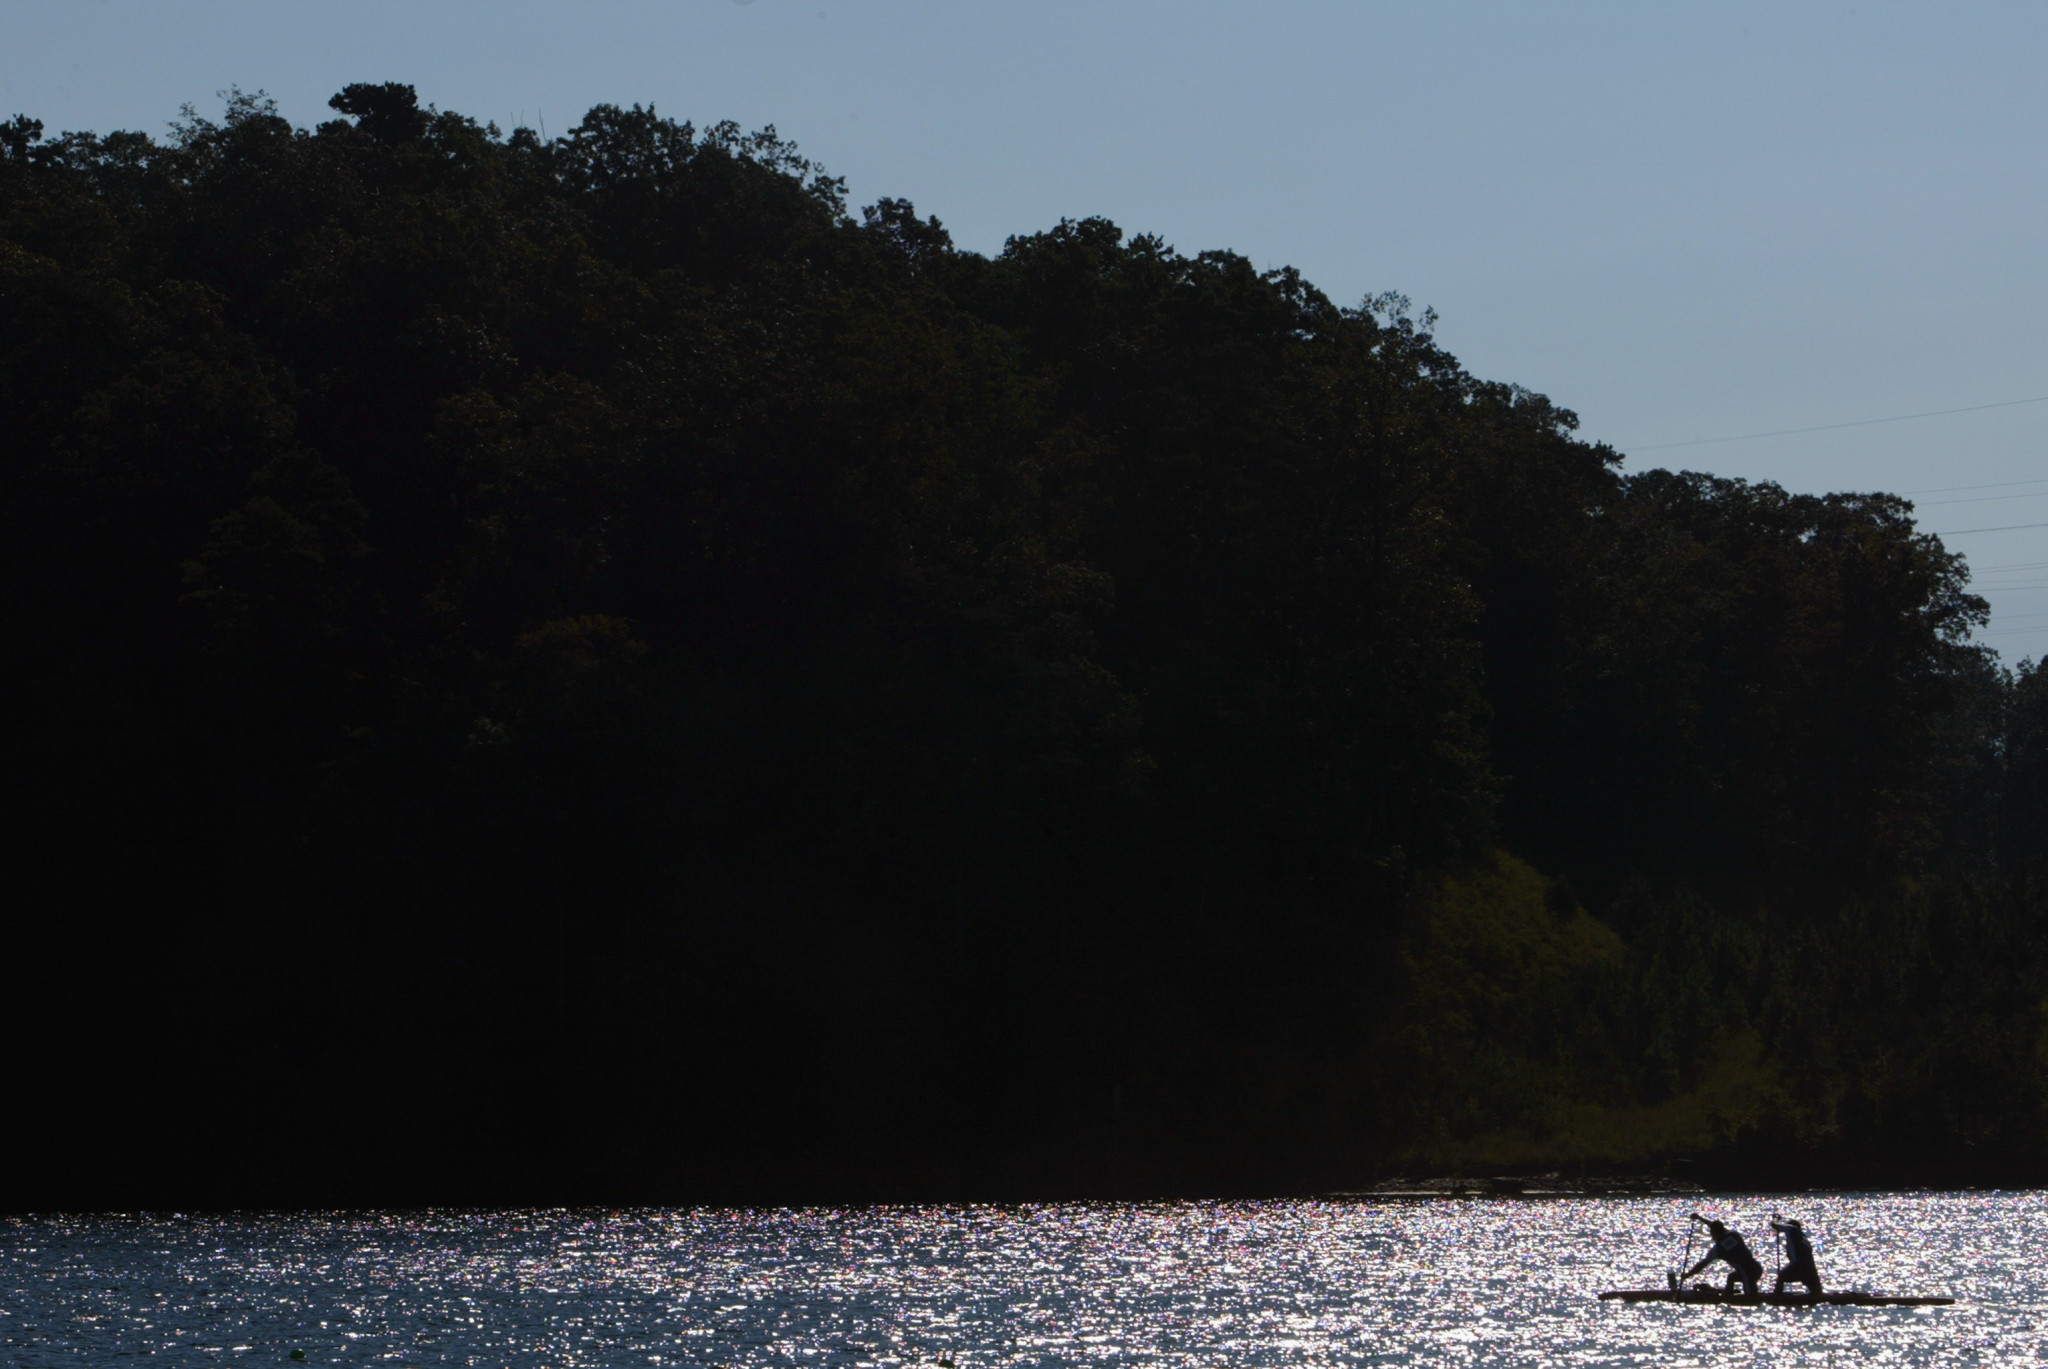 Competition will be held at Lake Lanier in Georgia ©Getty Images